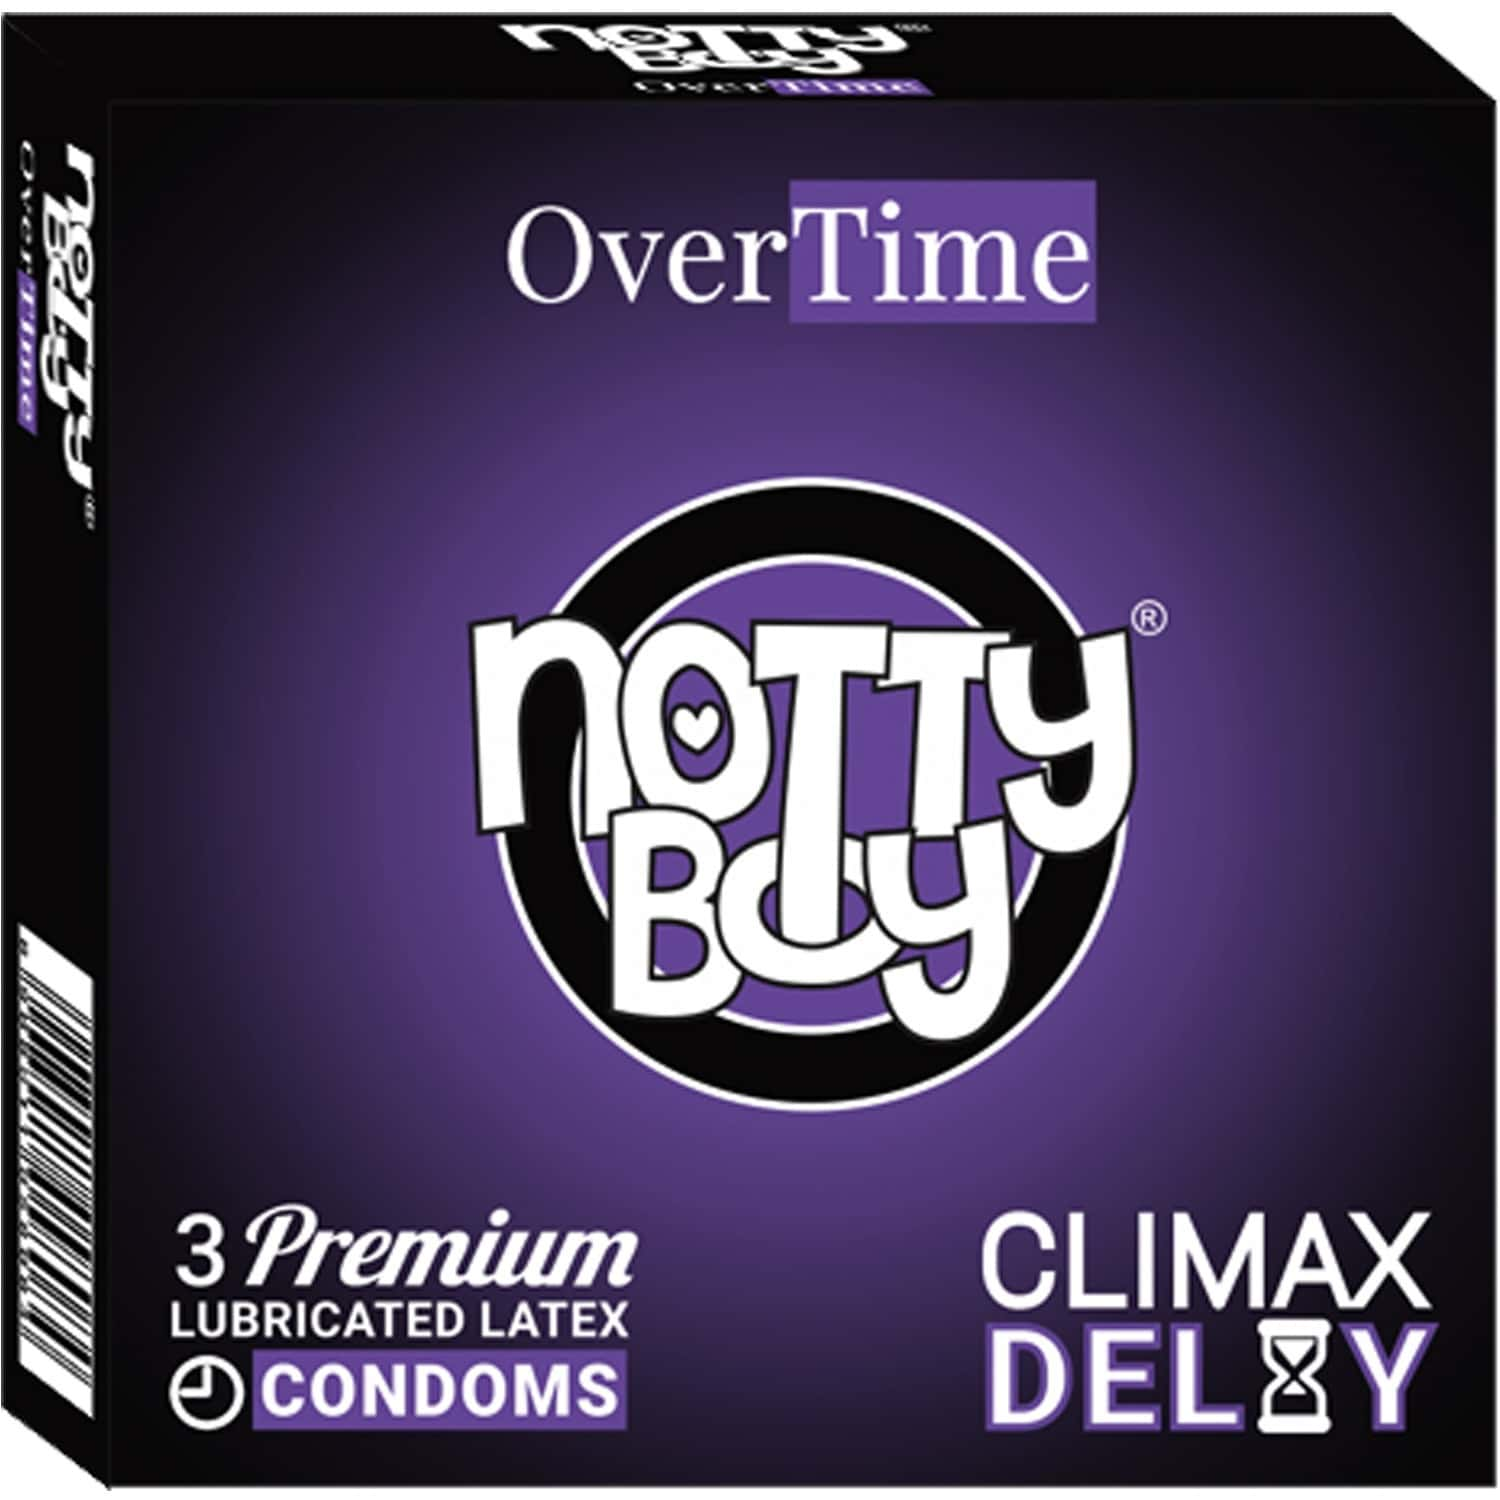 Nottyboy Overtime - Climax Delay Condoms 3